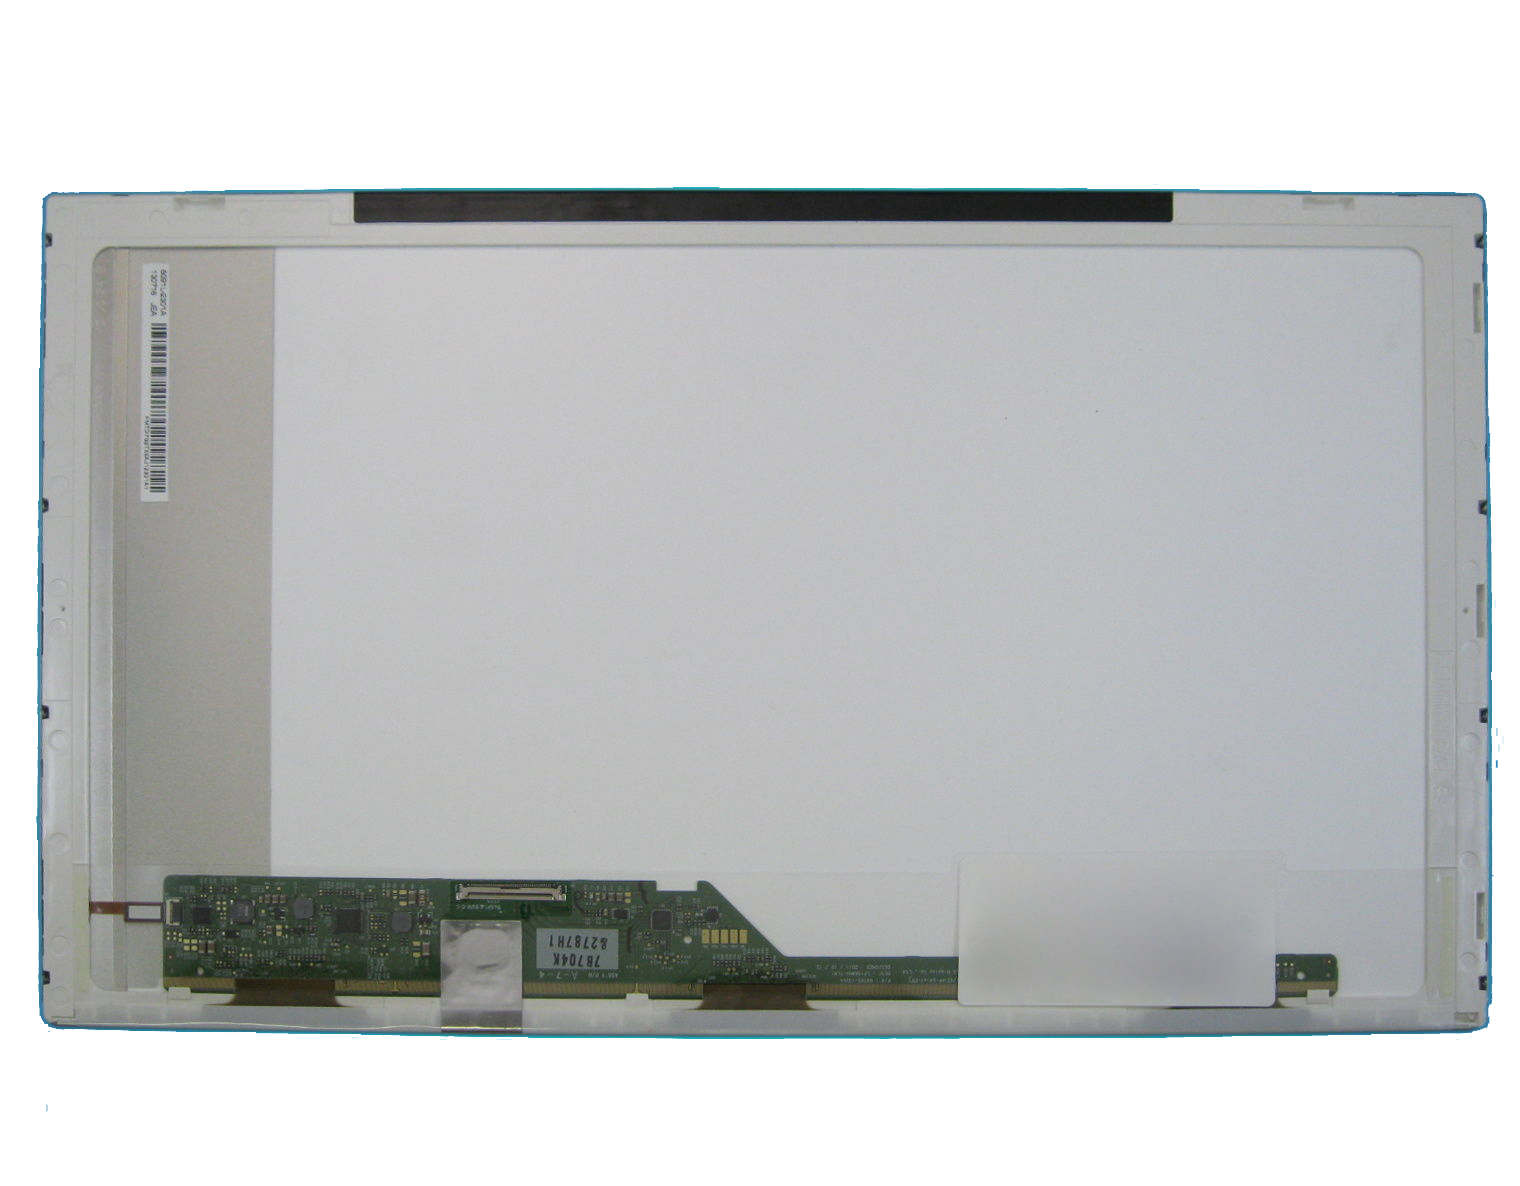 QuYing LAPTOP LCD SCREEN for Acer ASPIRE 5253 5253G 5942G 5935 SERIES (15.6 inch, 1366X768, 40 pin, TK) quying laptop lcd screen for acer extensa 5235 as5551 series 15 6 inch 1366x768 40pin tk